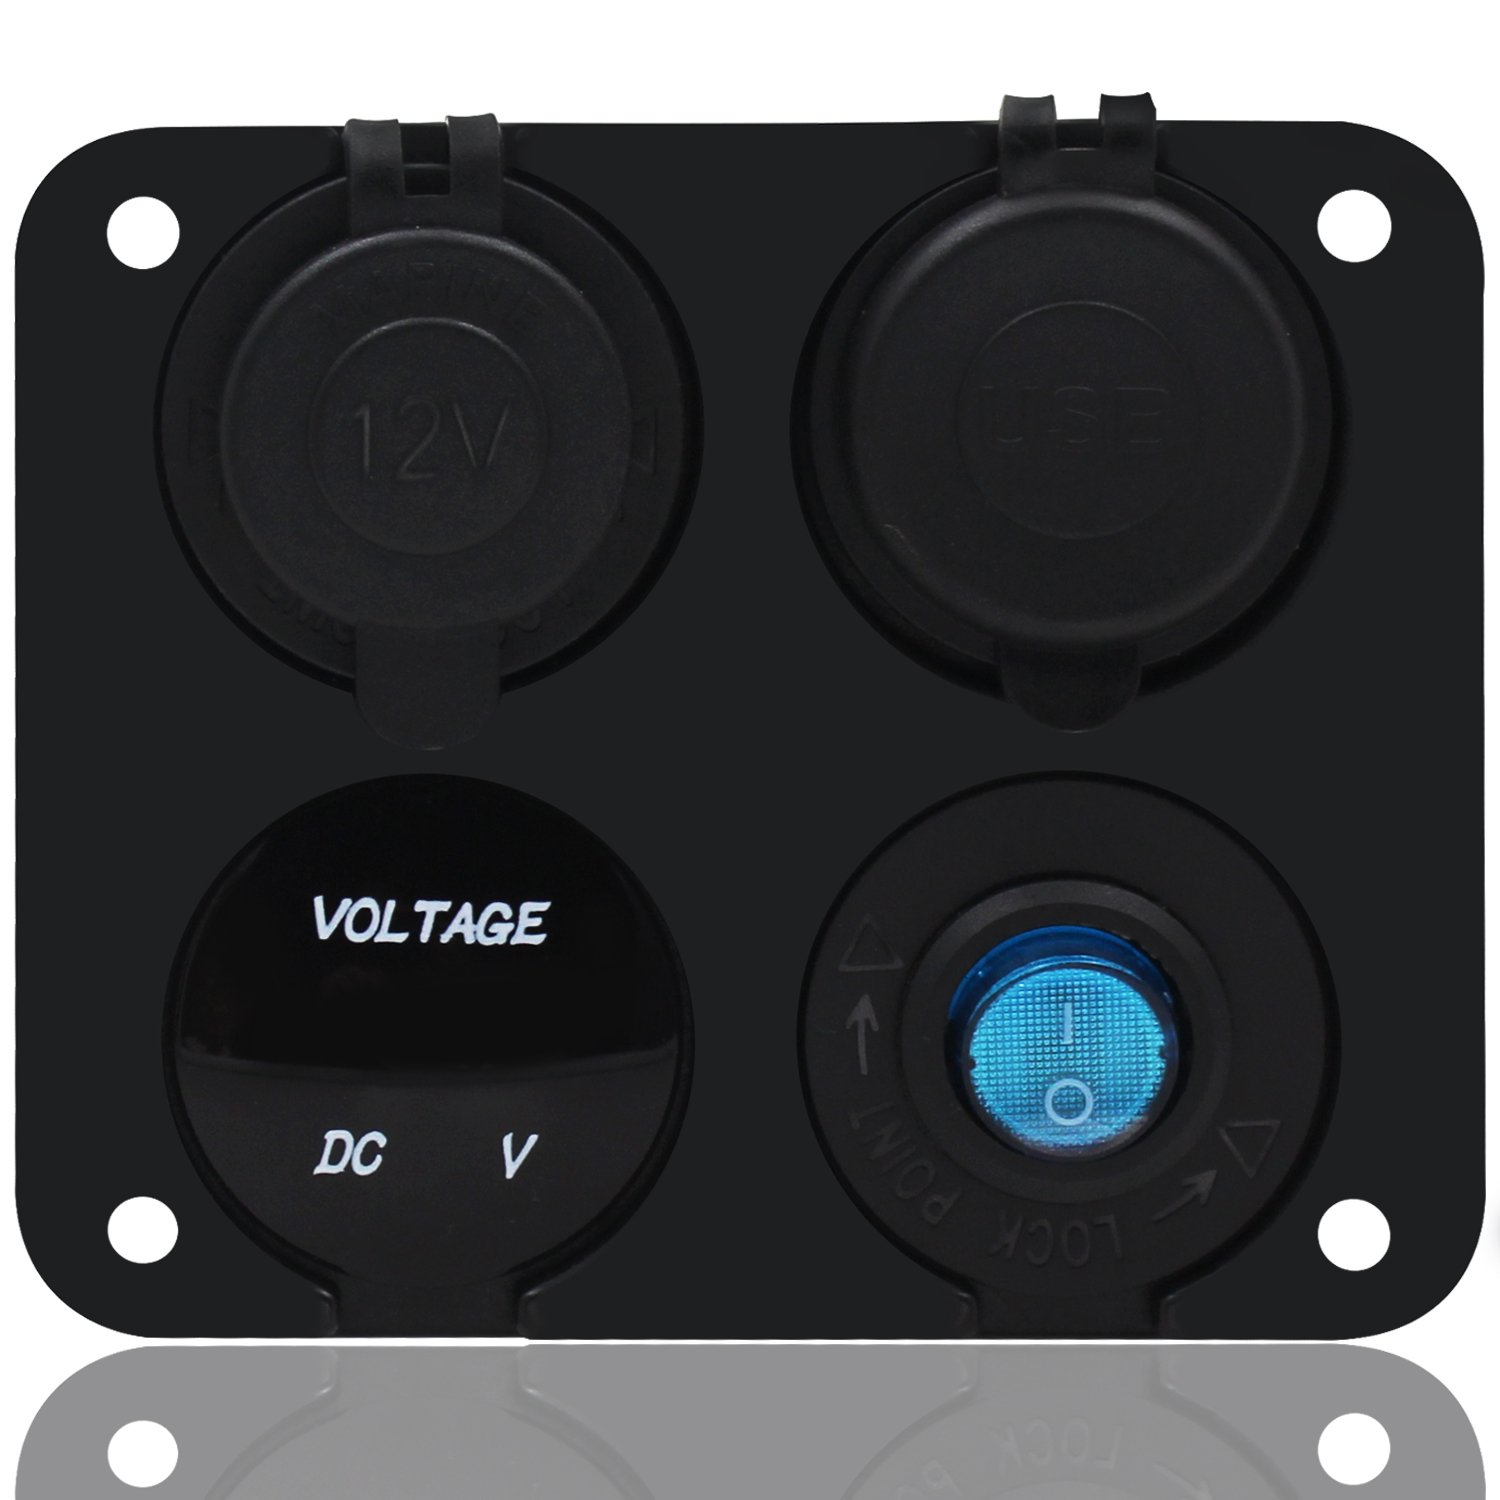 615yoyPgq9L._SL1500_ amazon com fxc toggle switch dual usb socket charger 2 1a & 2 1  at creativeand.co